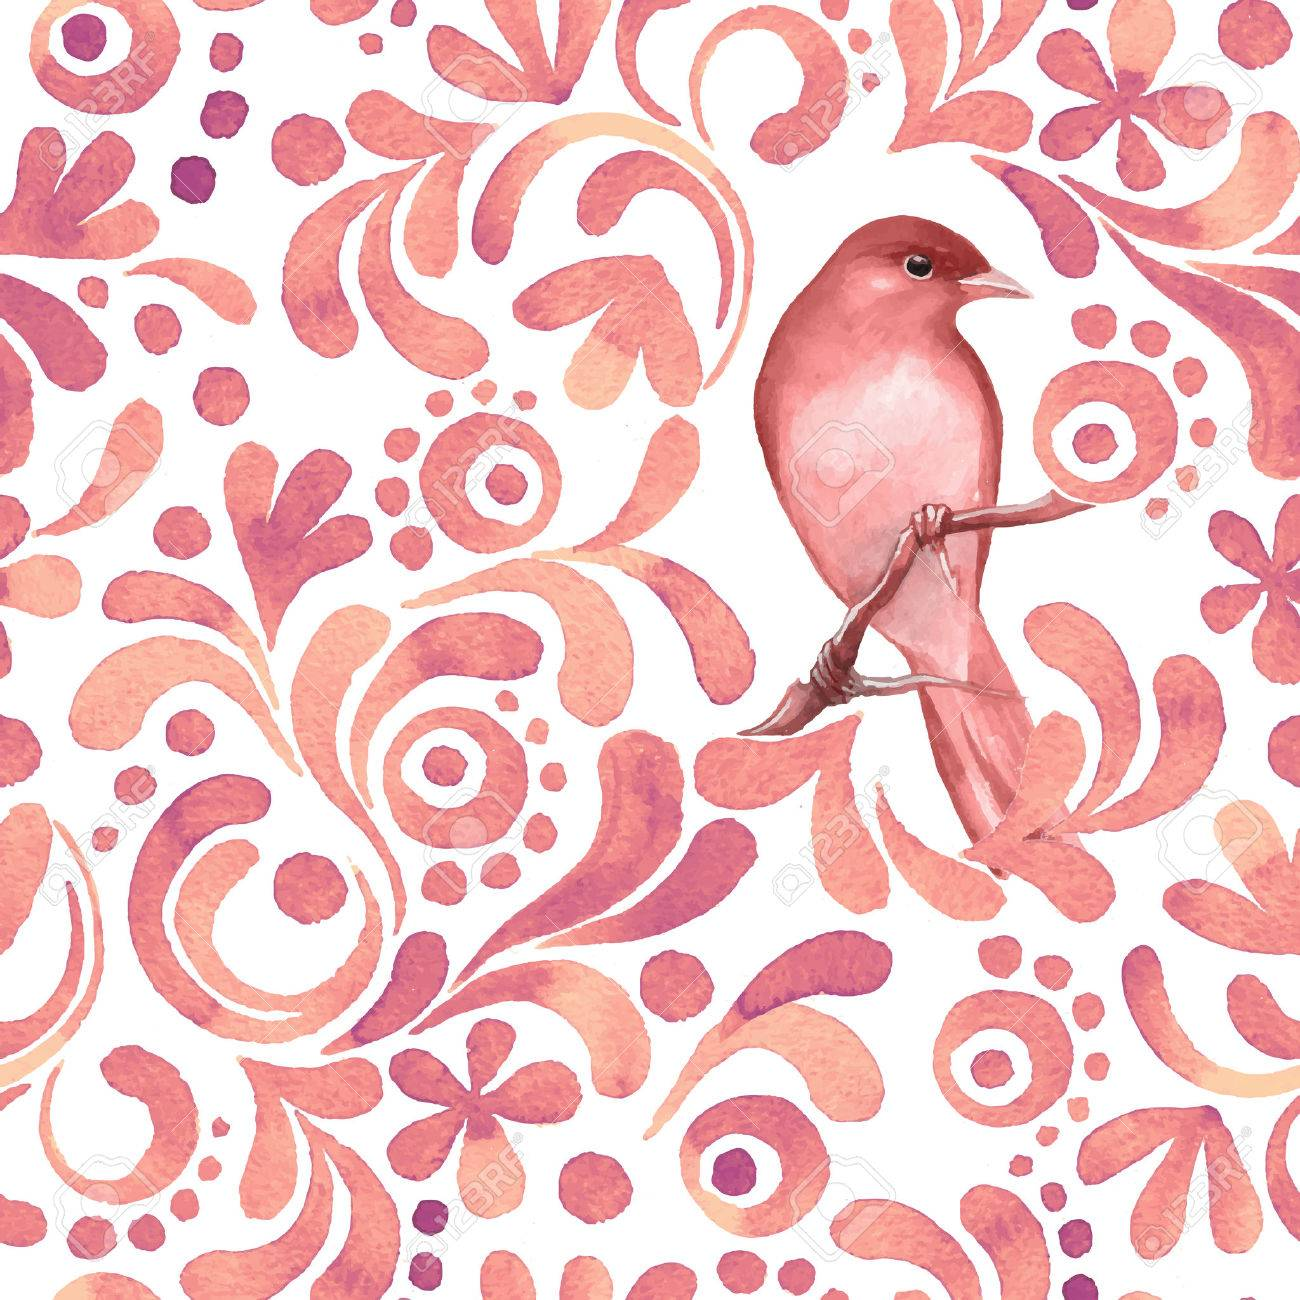 bird on branch 3 watercolor pattern seamless background vector